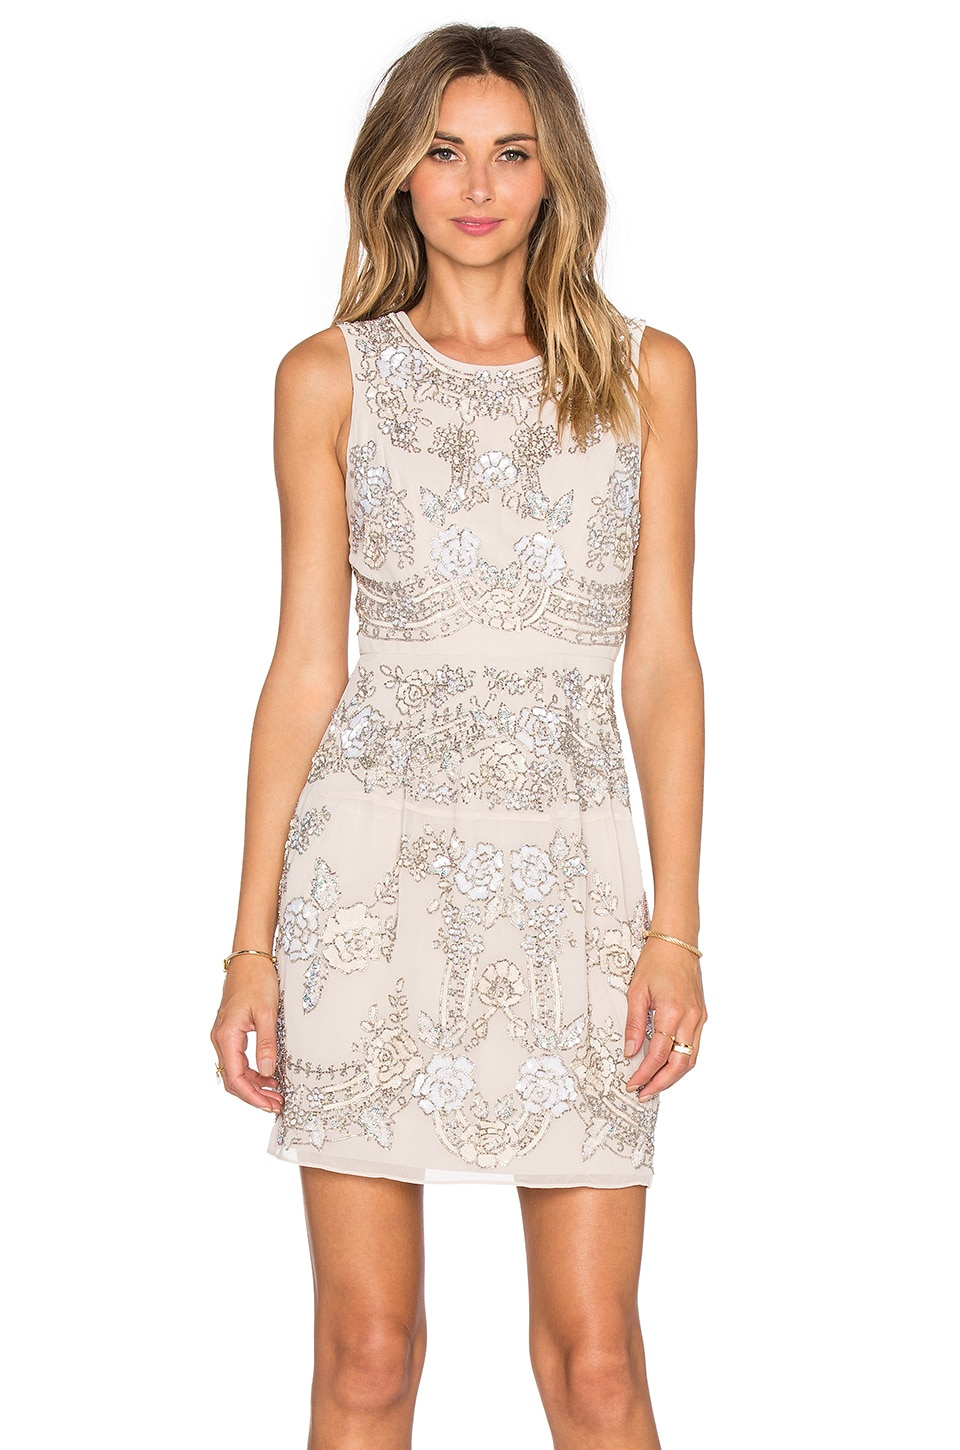 Needle & Thread Etch Lace Mini Dress in Dust Rose